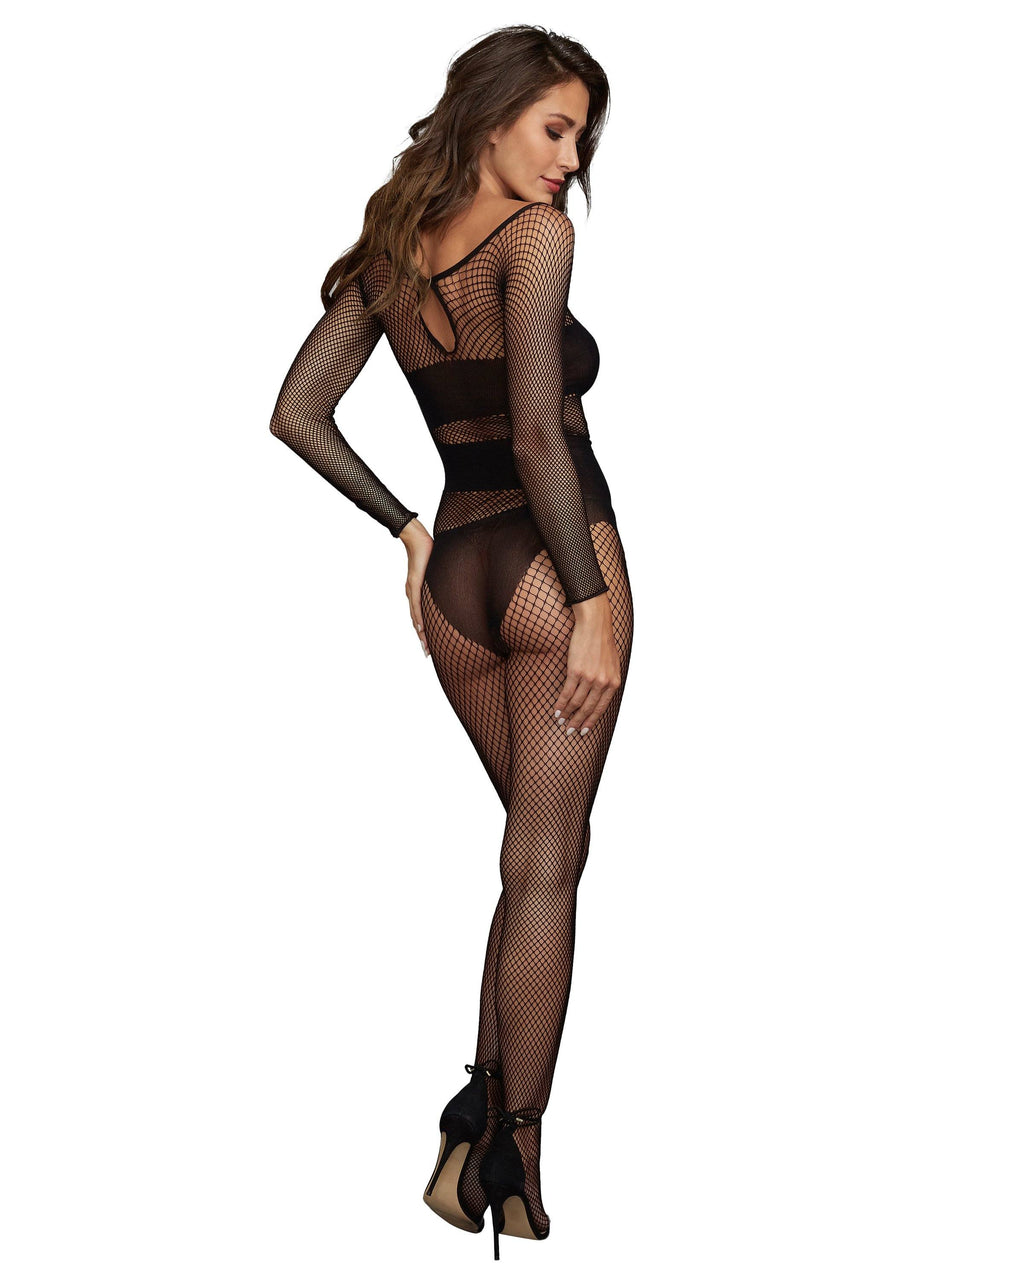 Stretch Fishnet Long-Sleeved Bodystocking with Opaque Knit Detailing Bodystocking Dreamgirl International